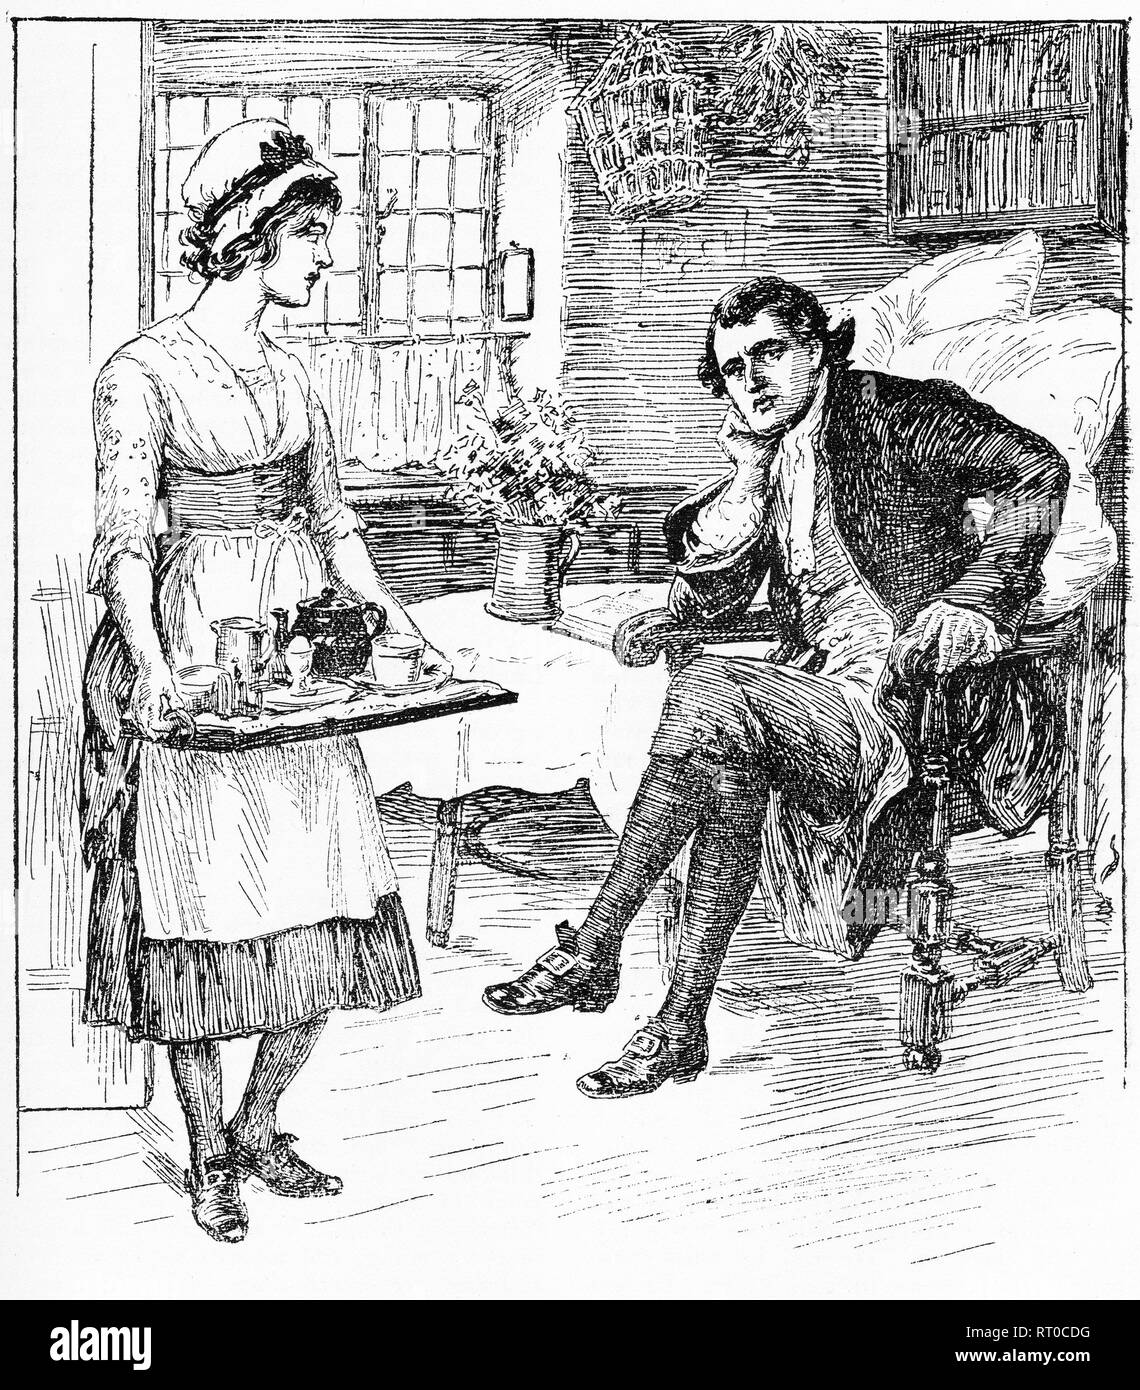 Engraving of a serving maid with her master in the household. From Chatterbox magazine, 1905 - Stock Image